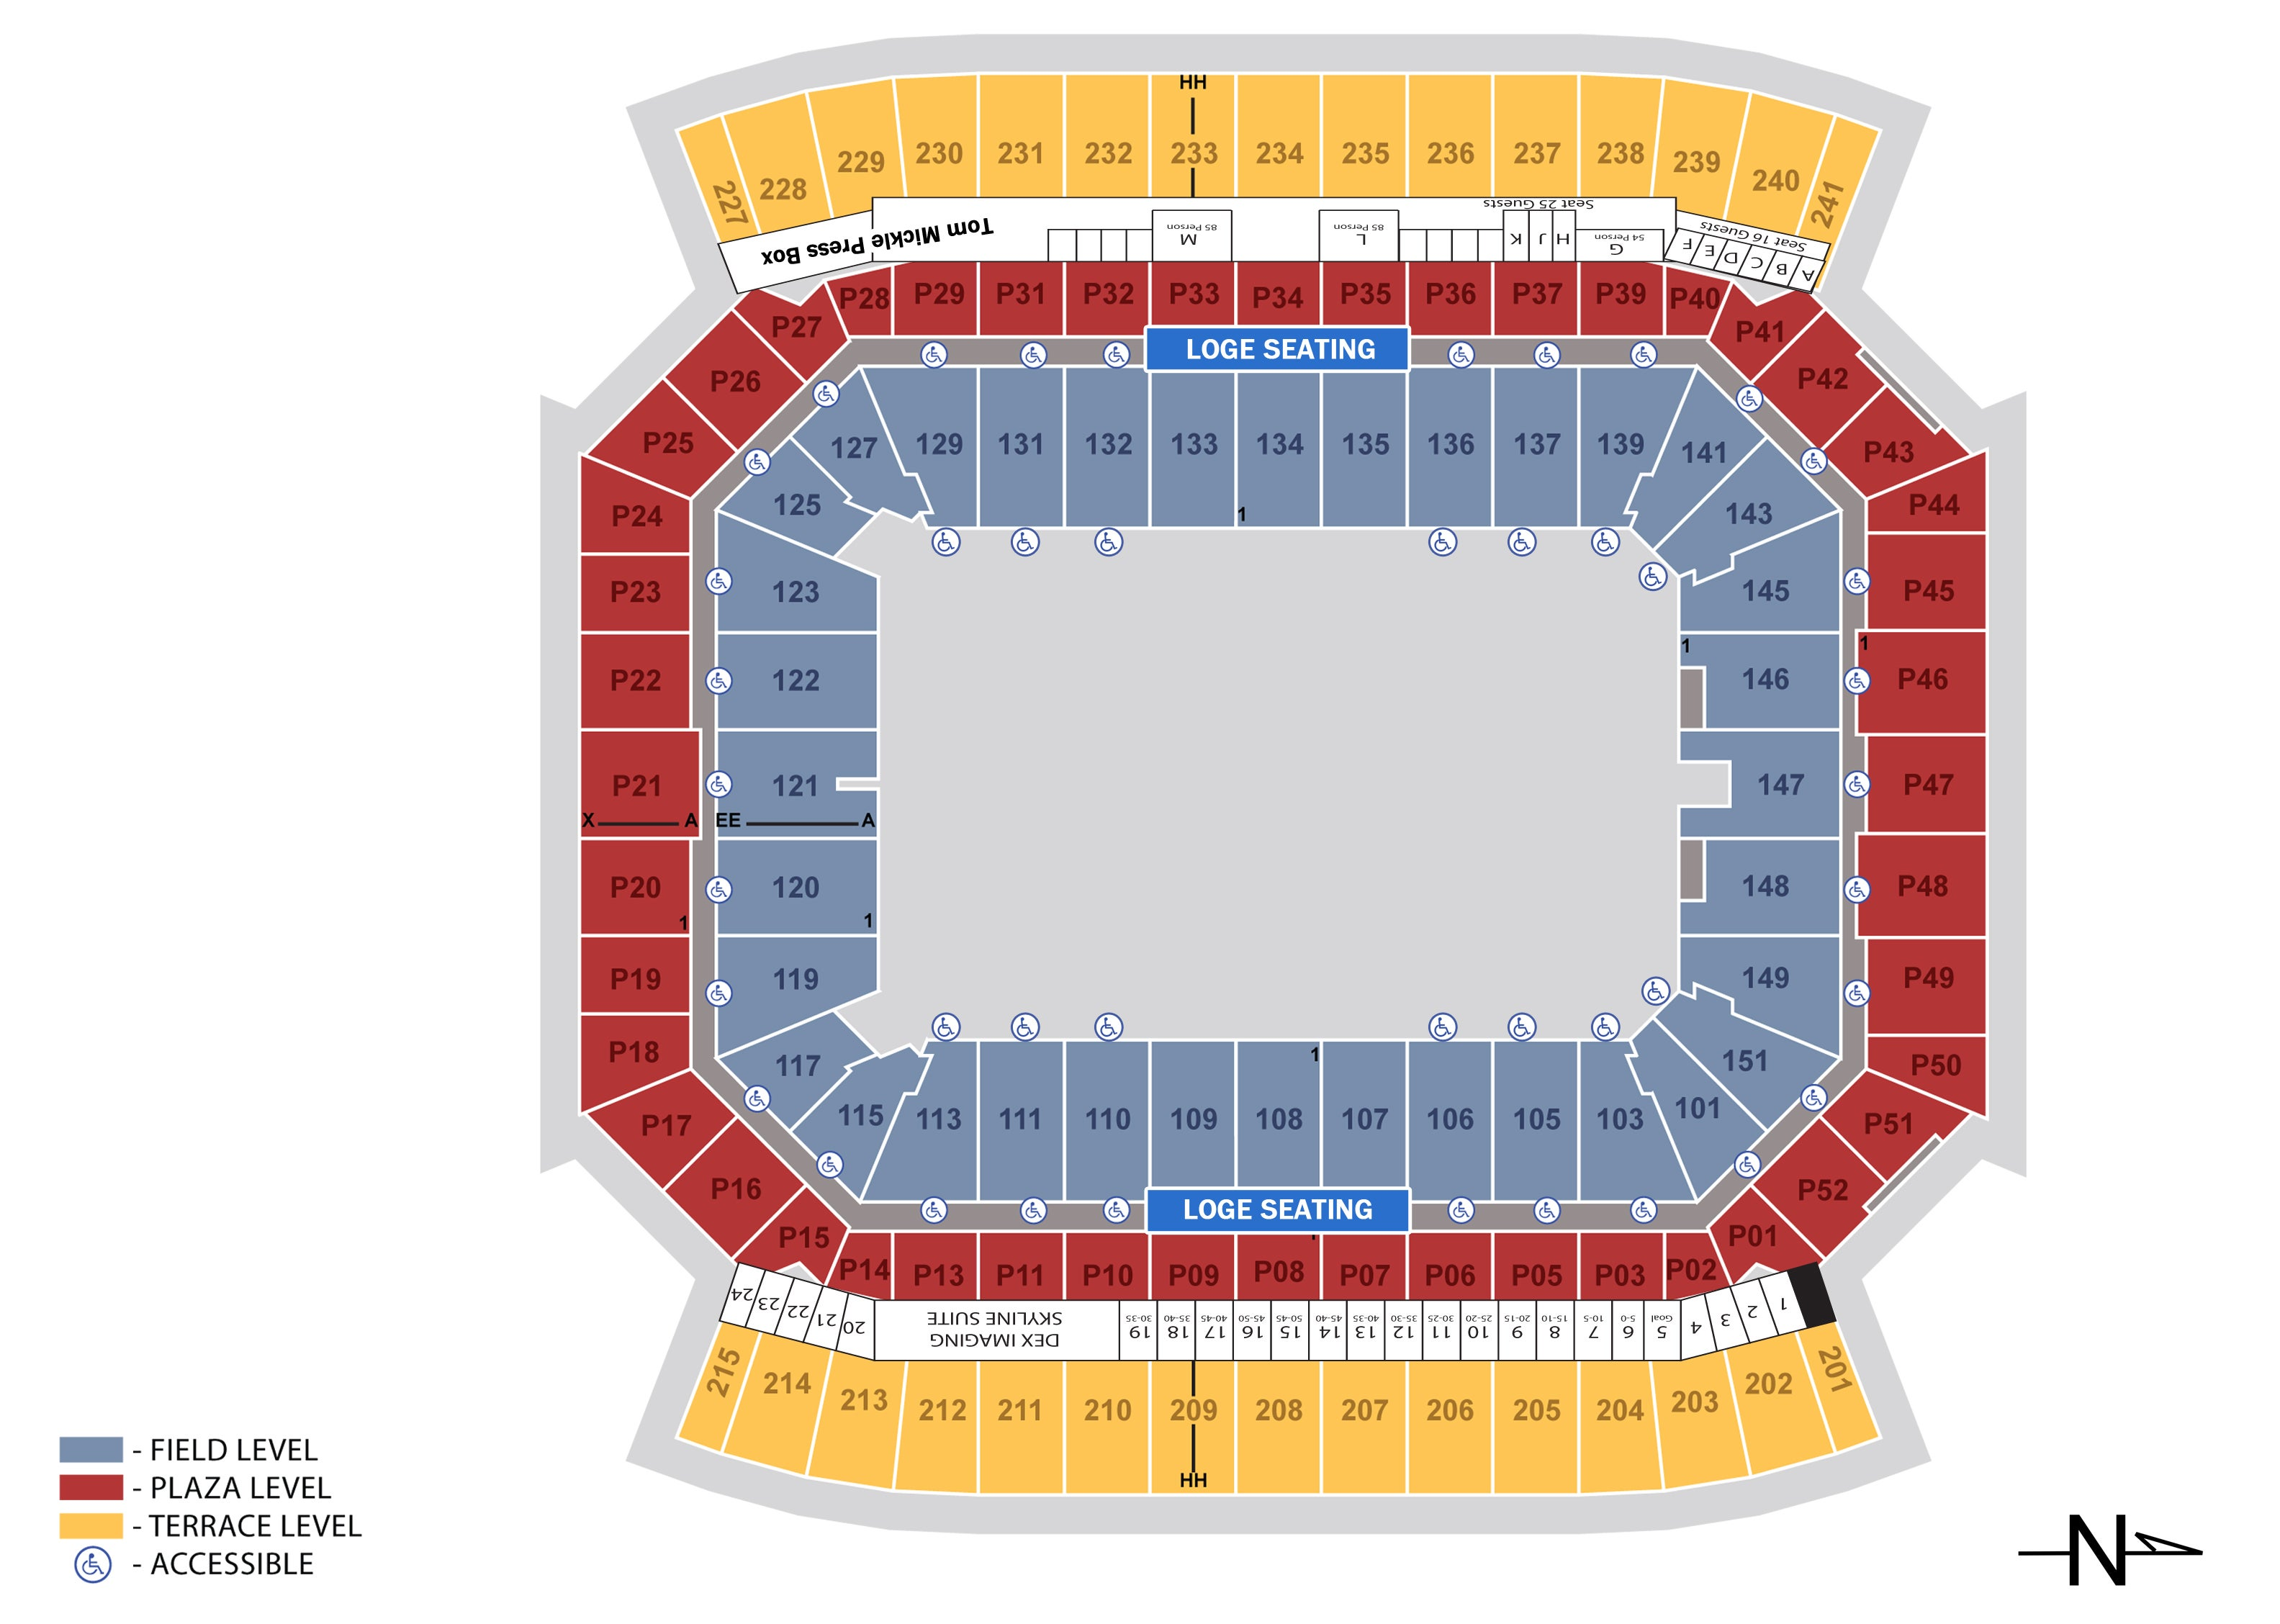 Seating Charts | Camping World Stadium